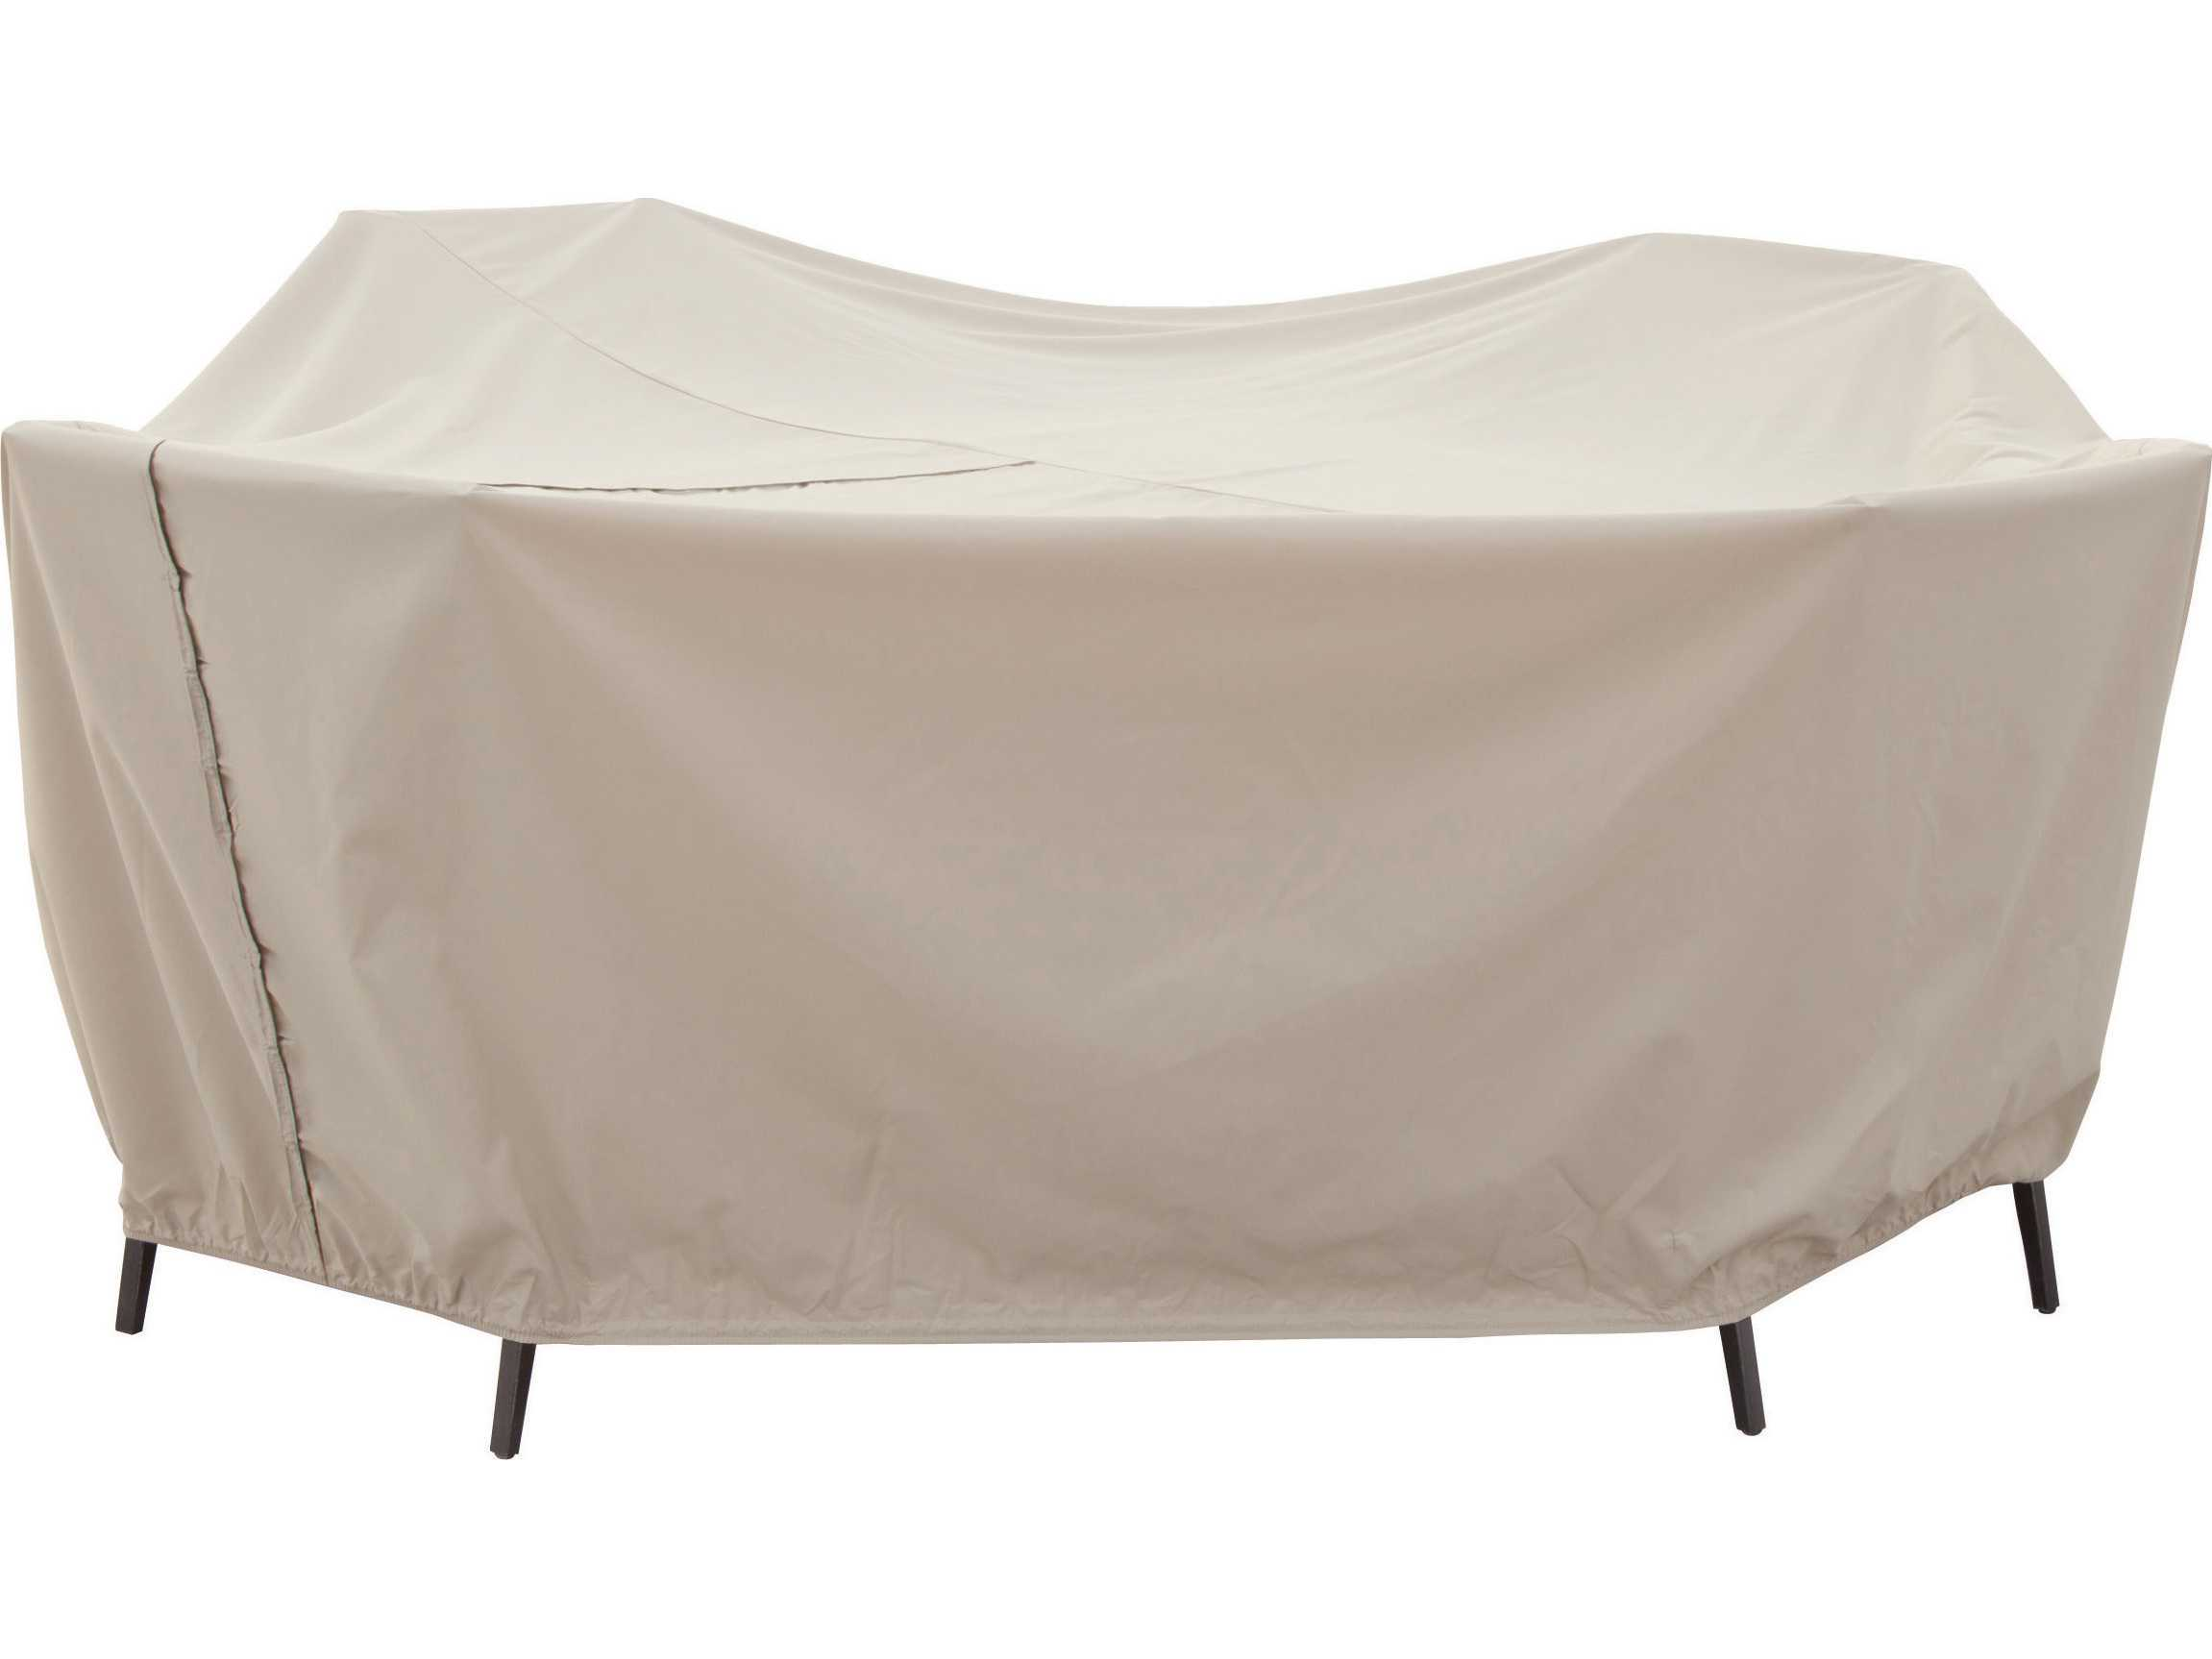 garden treasures sofa cover corner bed sale ireland treasure 60 round table and chairs with